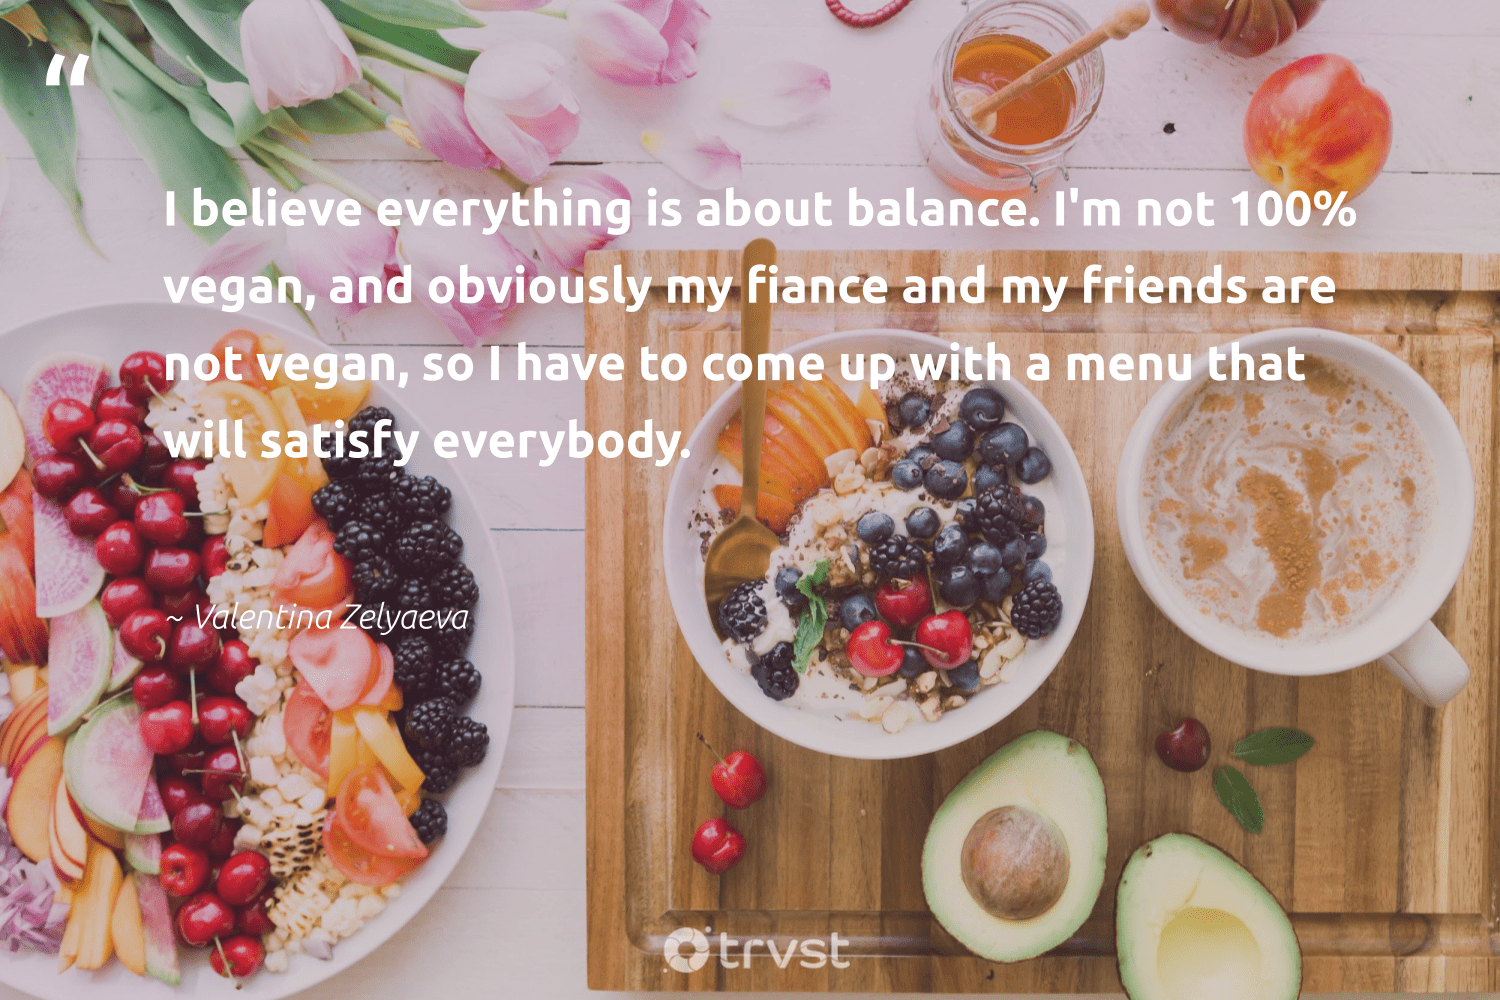 """I believe everything is about balance. I'm not 100% vegan, and obviously my fiance and my friends are not vegan, so I have to come up with a menu that will satisfy everybody.""  - Valentina Zelyaeva #trvst #quotes #balance #vegan #healthyfood #green #mindset #dogood #nutrition #greenliving #changemakers #impact"